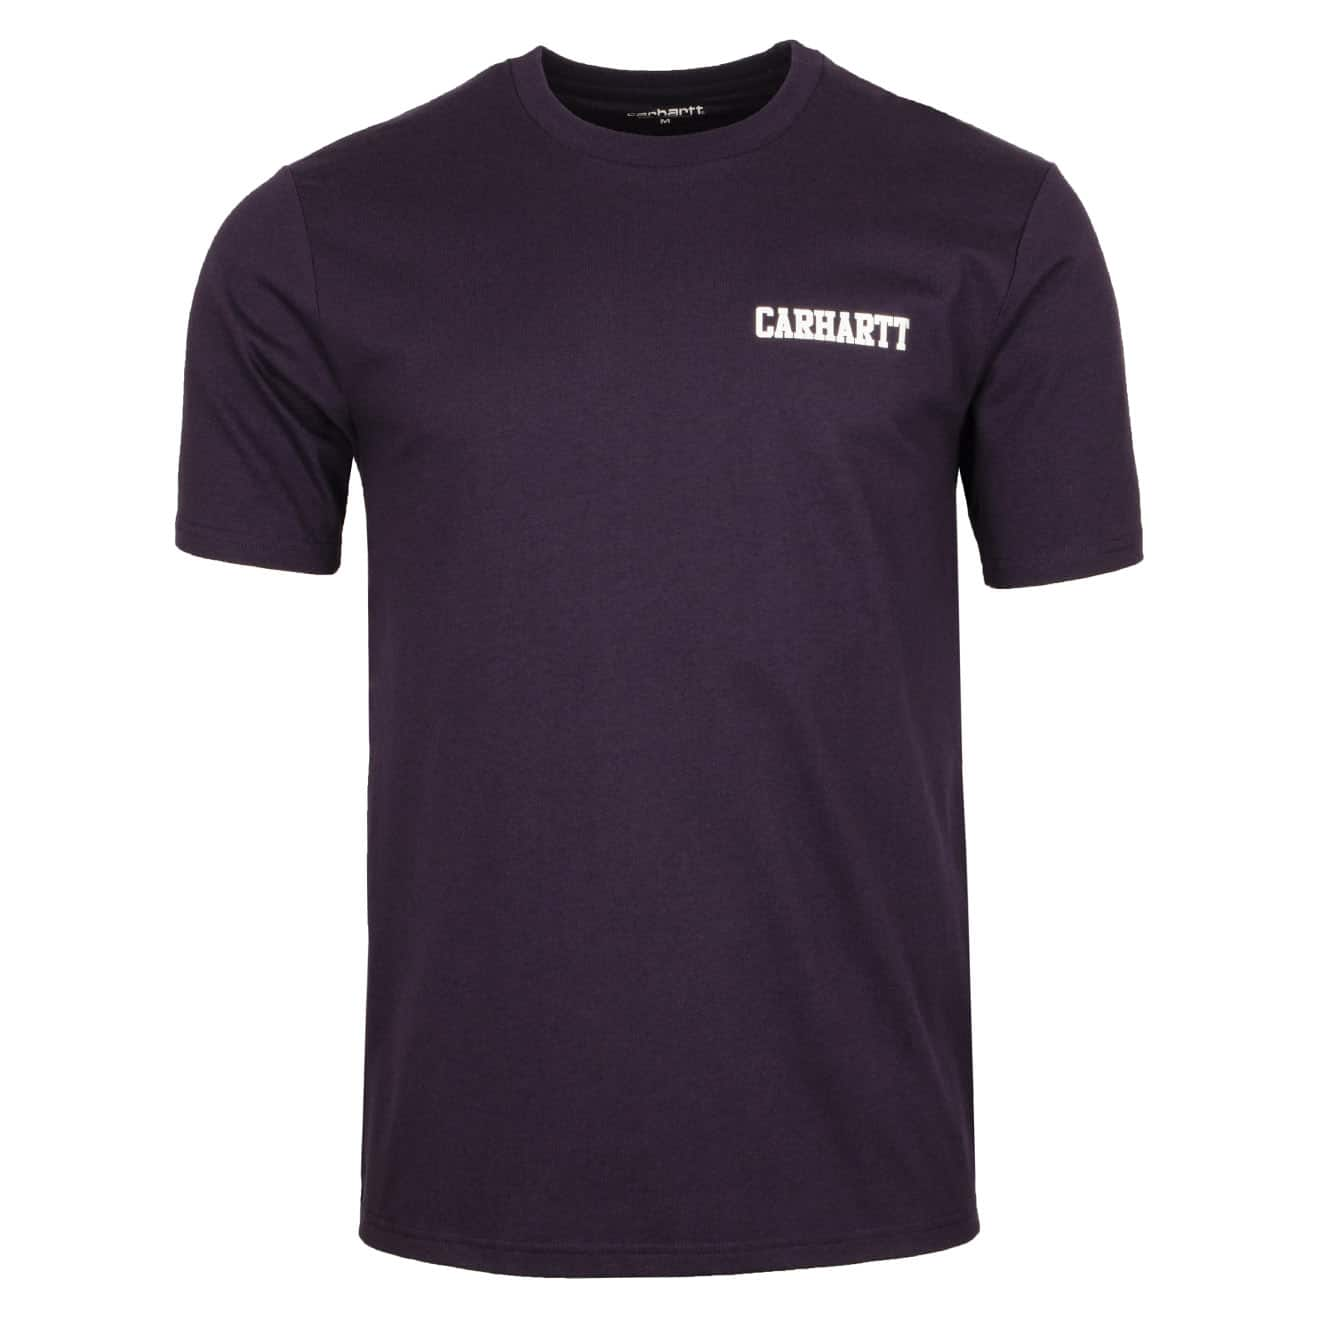 Carhartt College Script T-Shirt Lakers / White